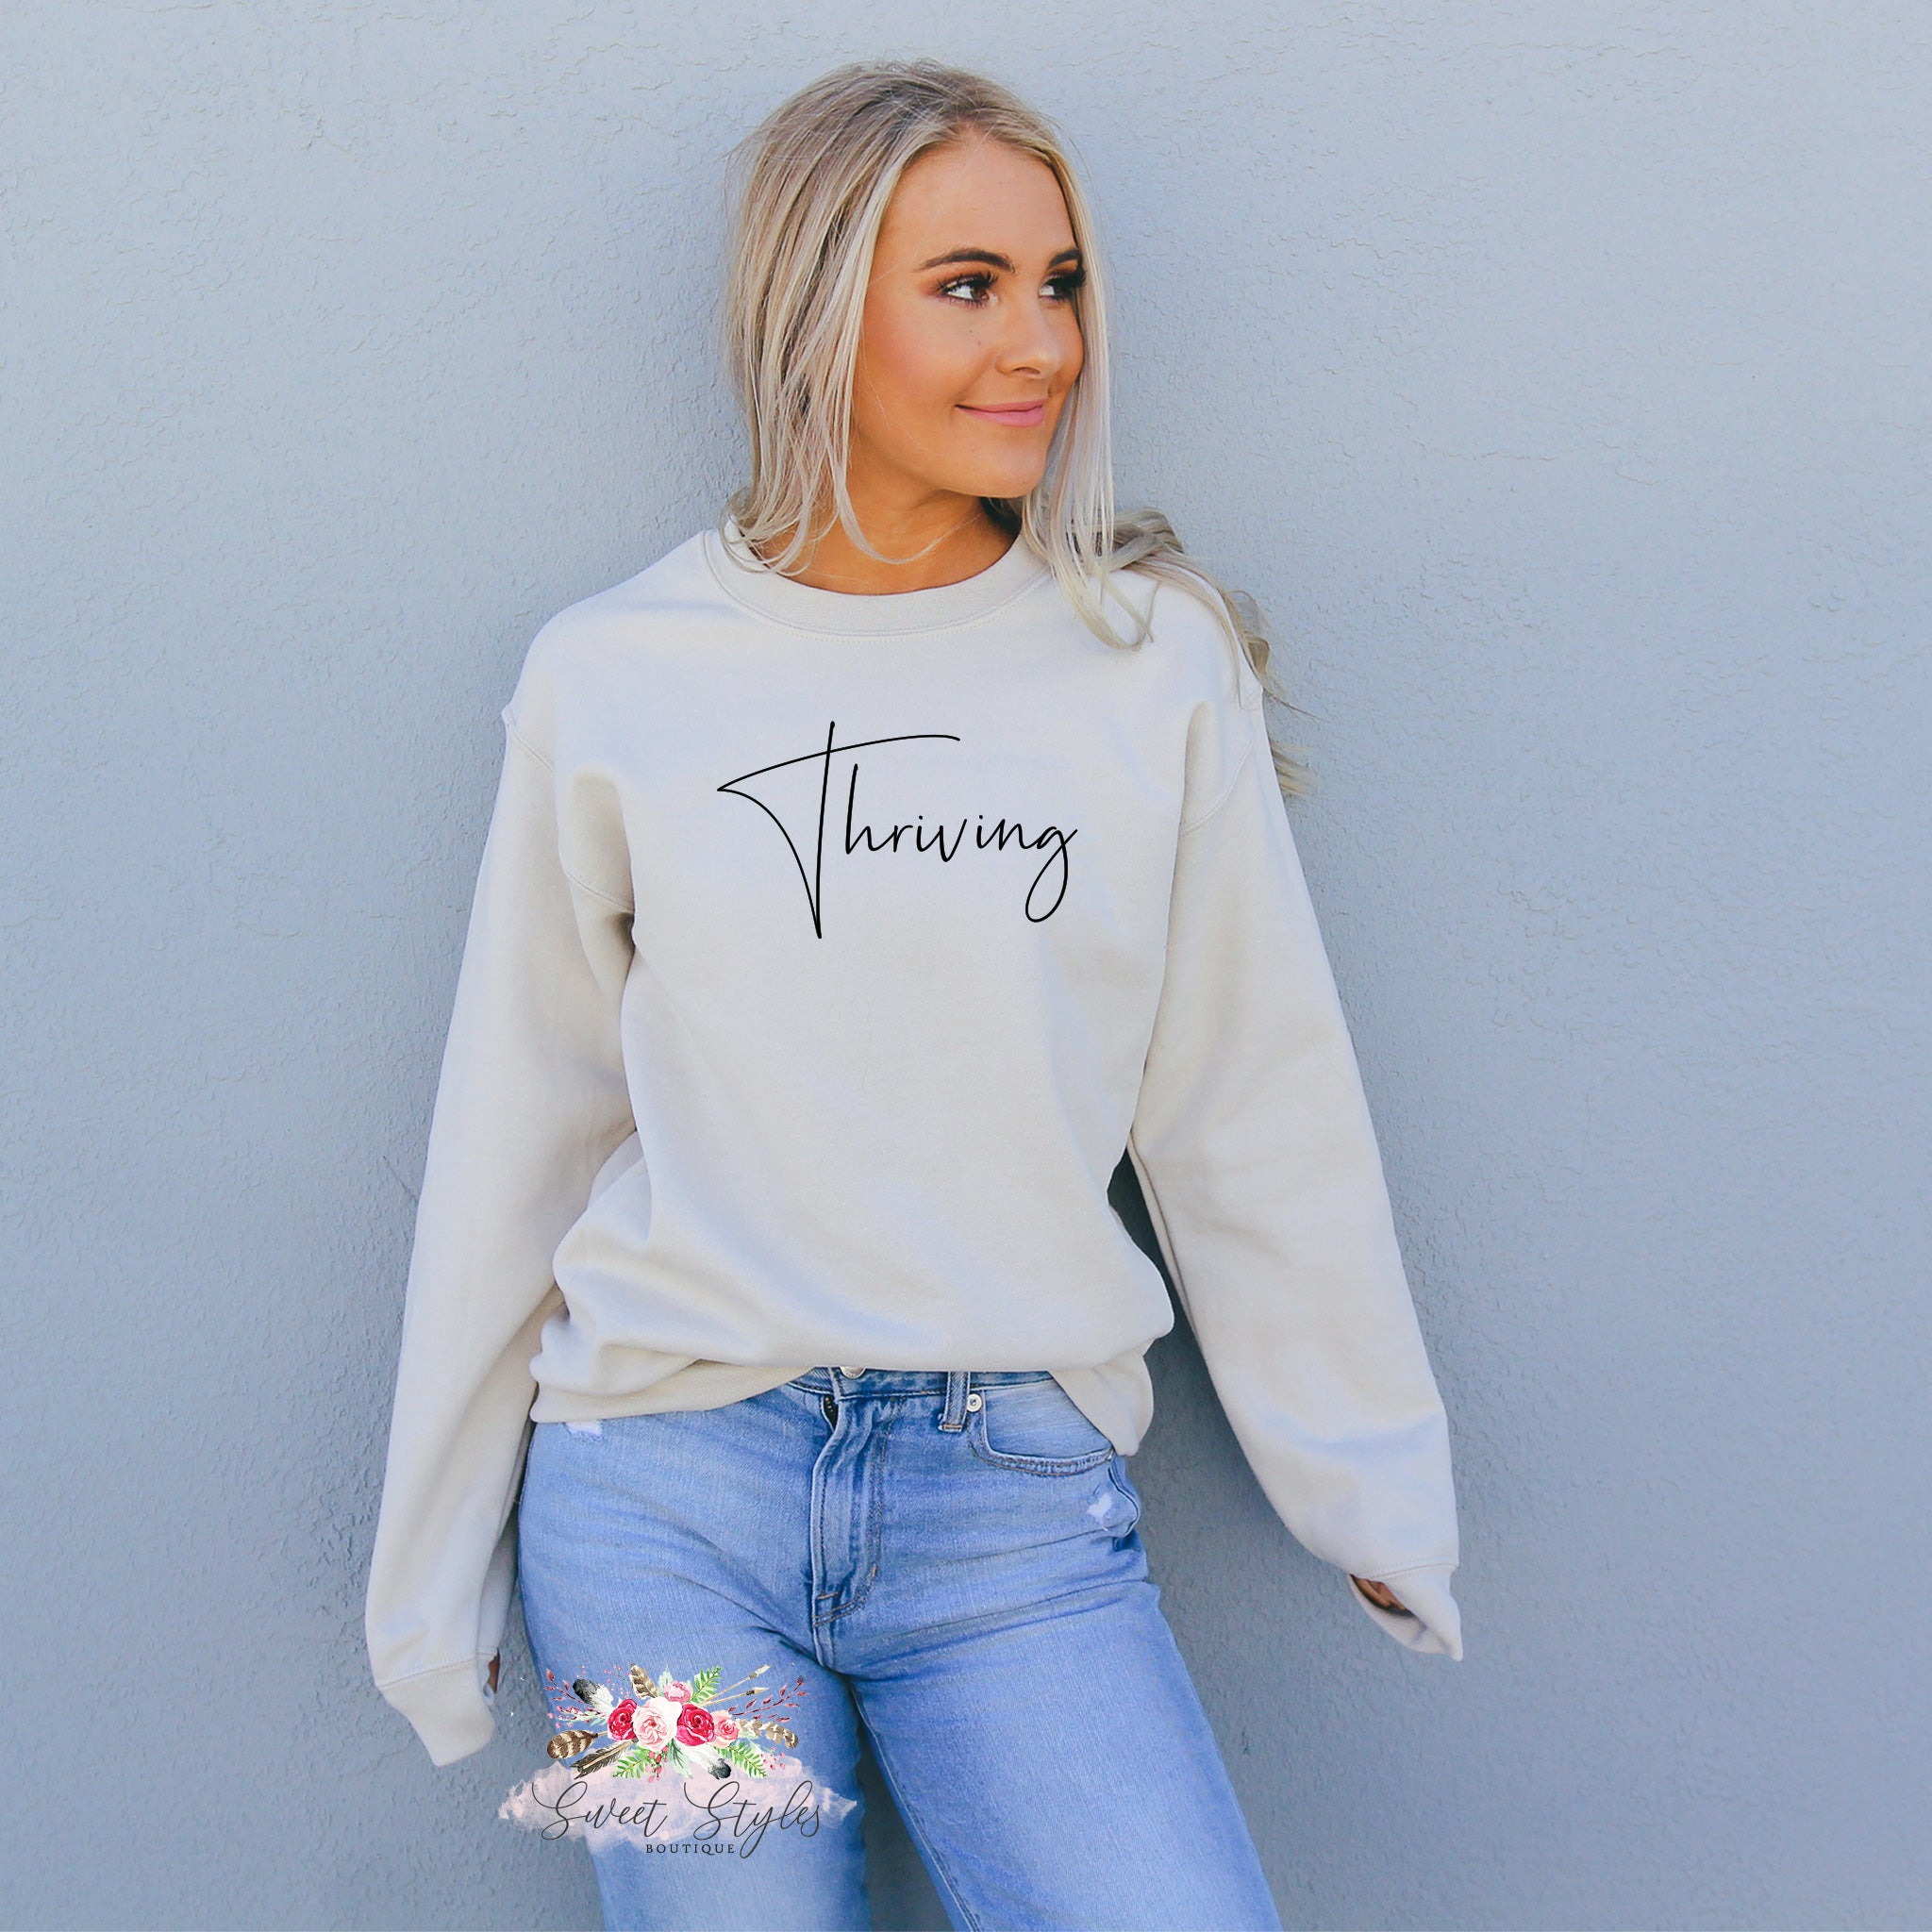 Thriving sweater-Sweet Styles boutique